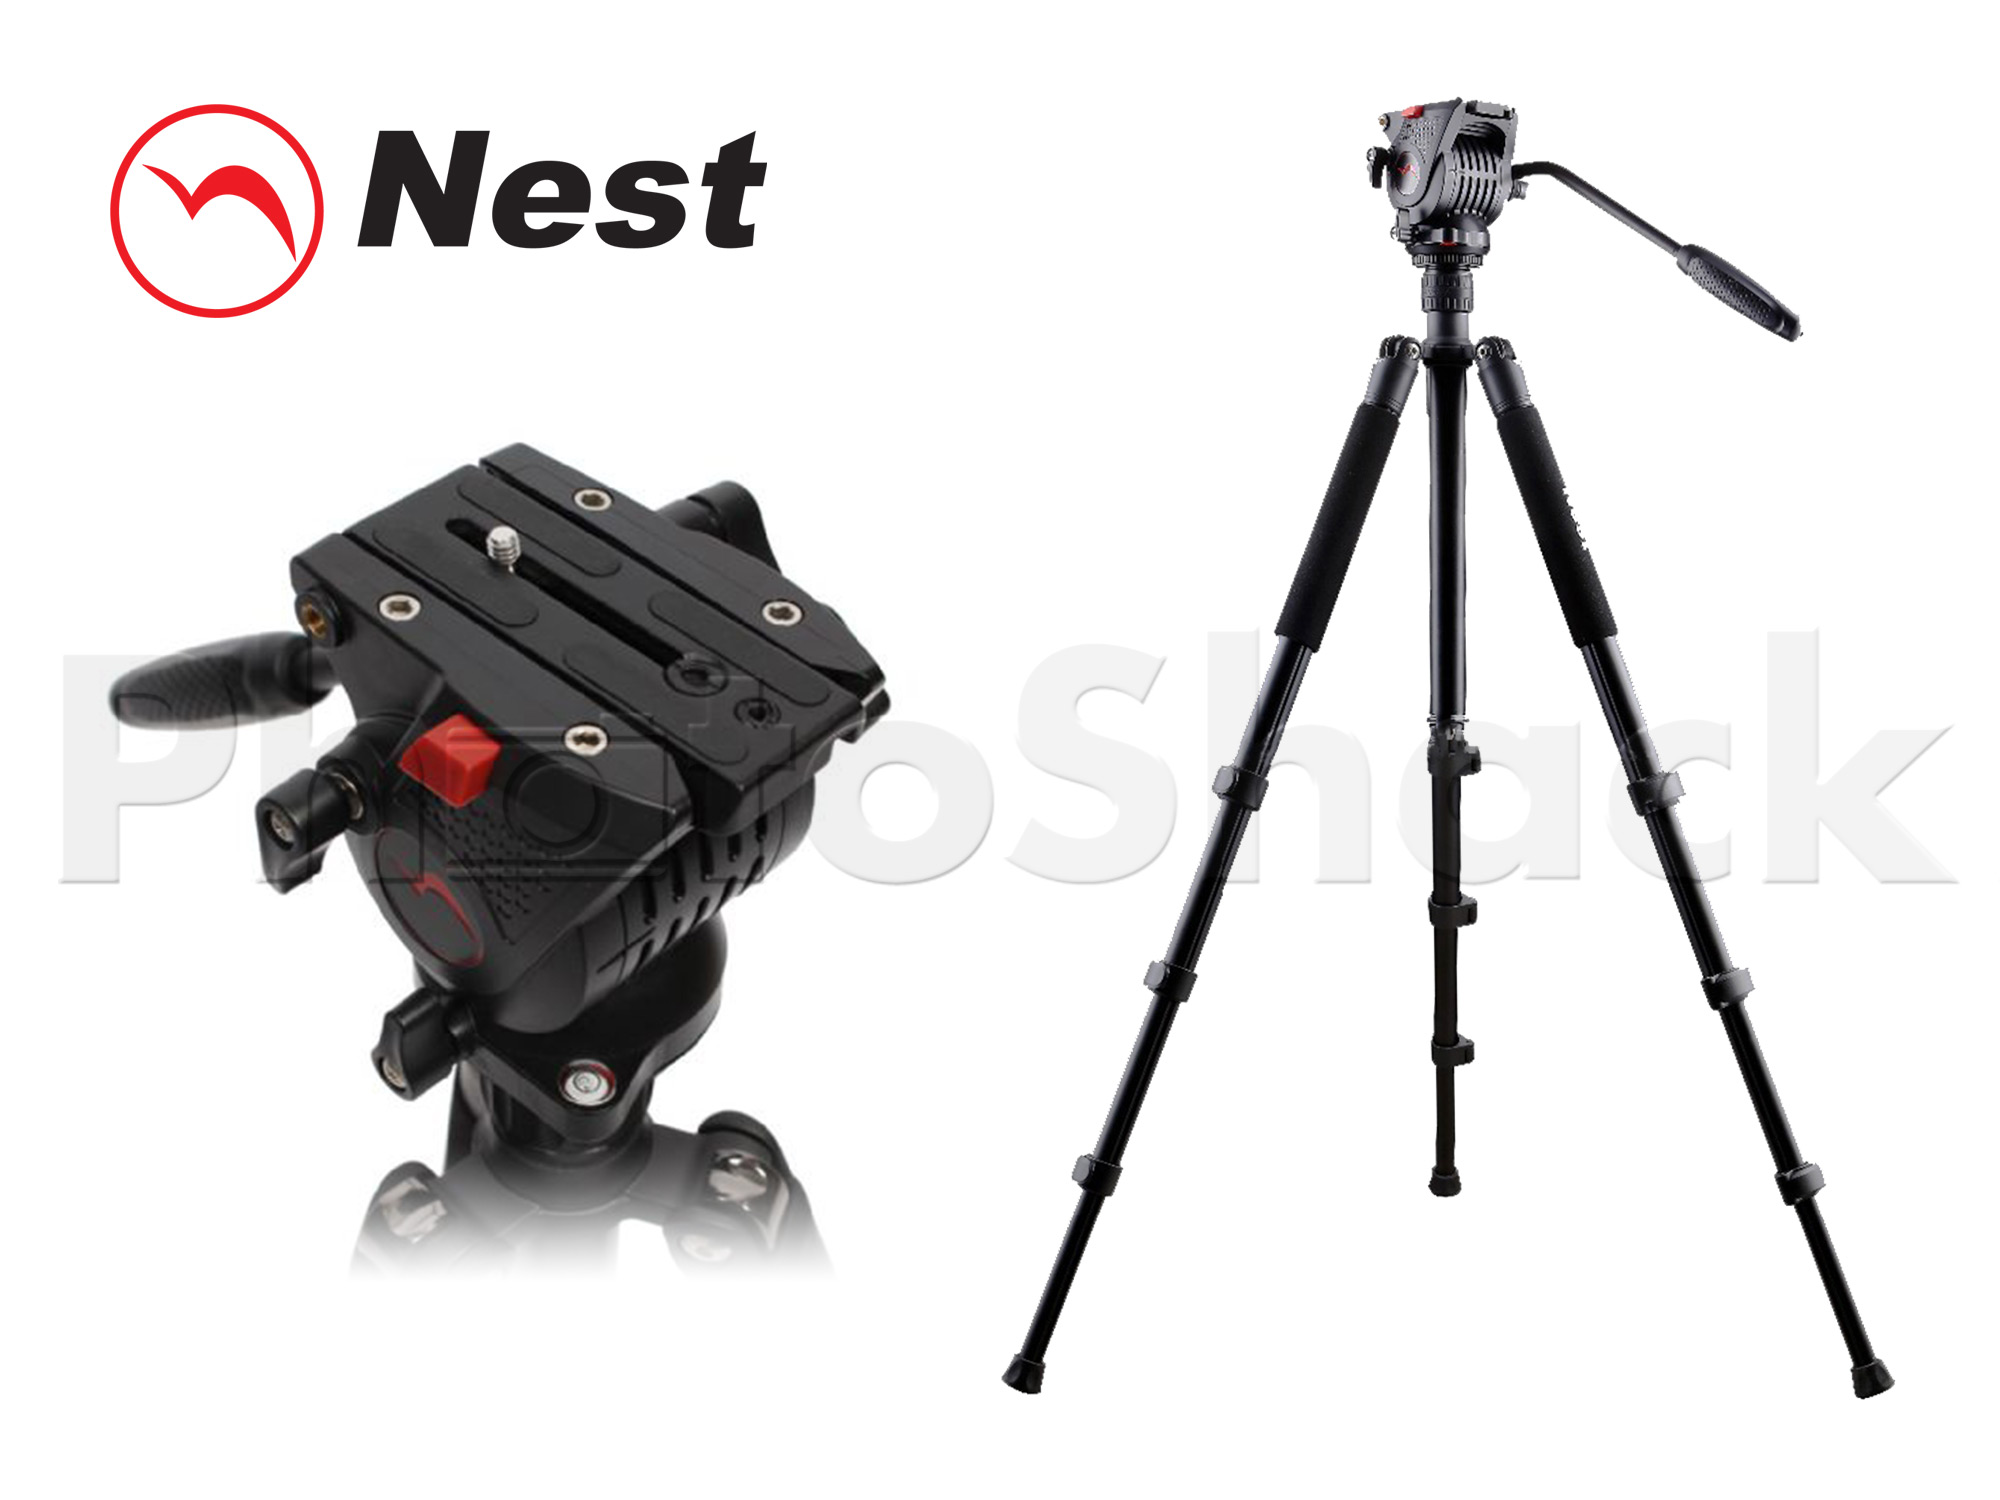 Nest NT-767 1.7m Video Tripod & Head